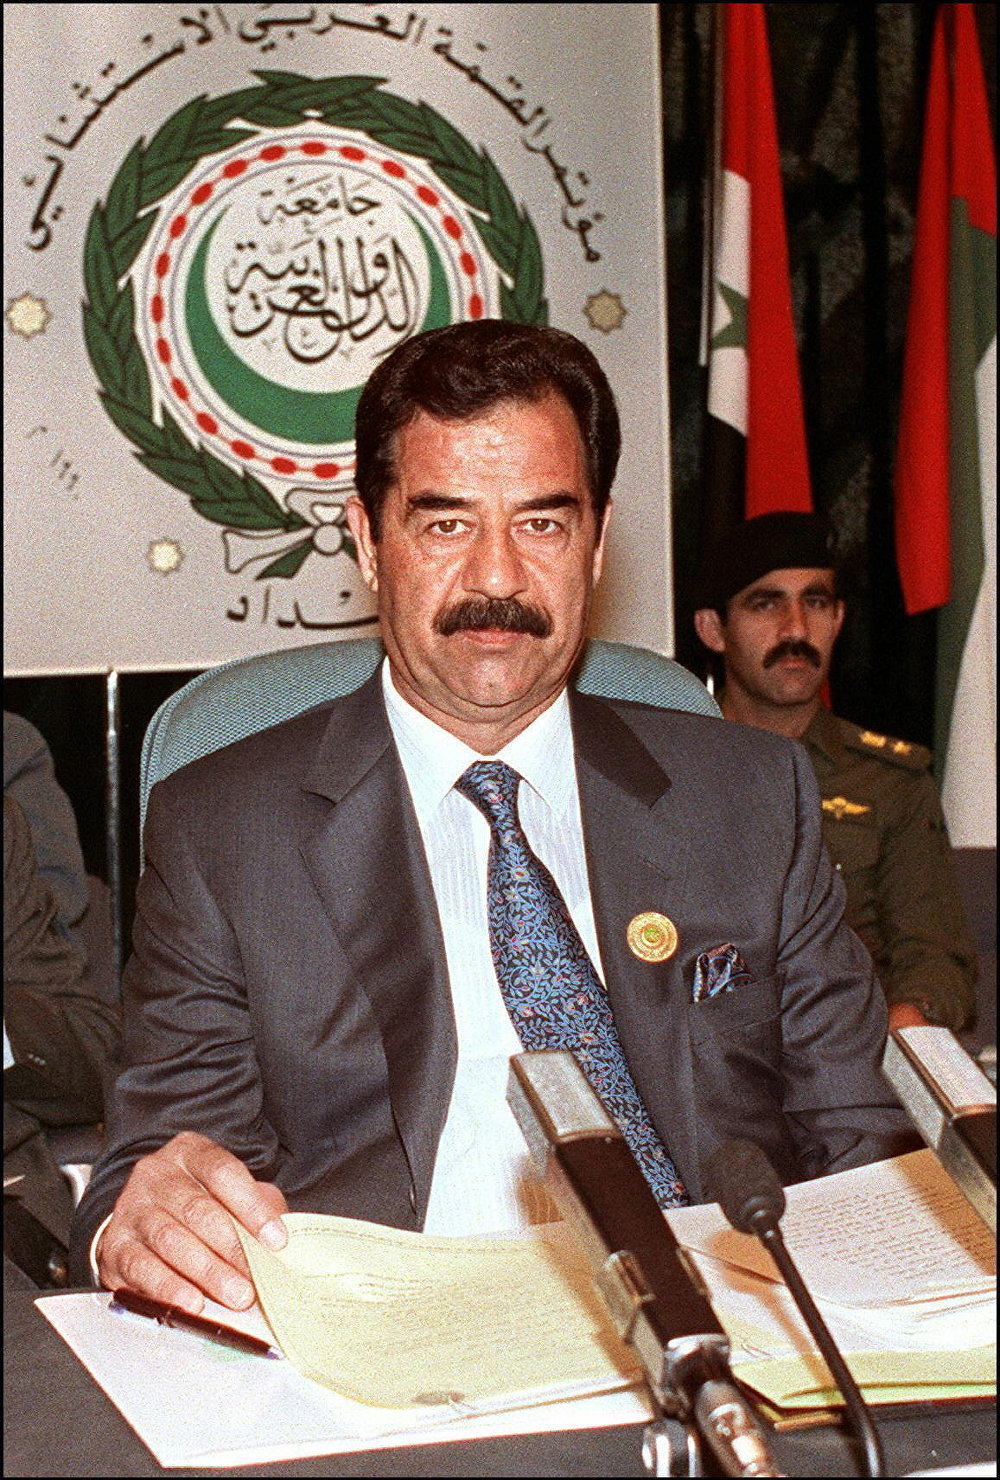 Former Iraqi President Saddam Hussein shown in file picture dated 28 May 1990 in Baghdad, addresses the opening session of the Extraordinary Arab Summit called to adopt a unified Arab stance against Soviet Jewish immigration to Israel.